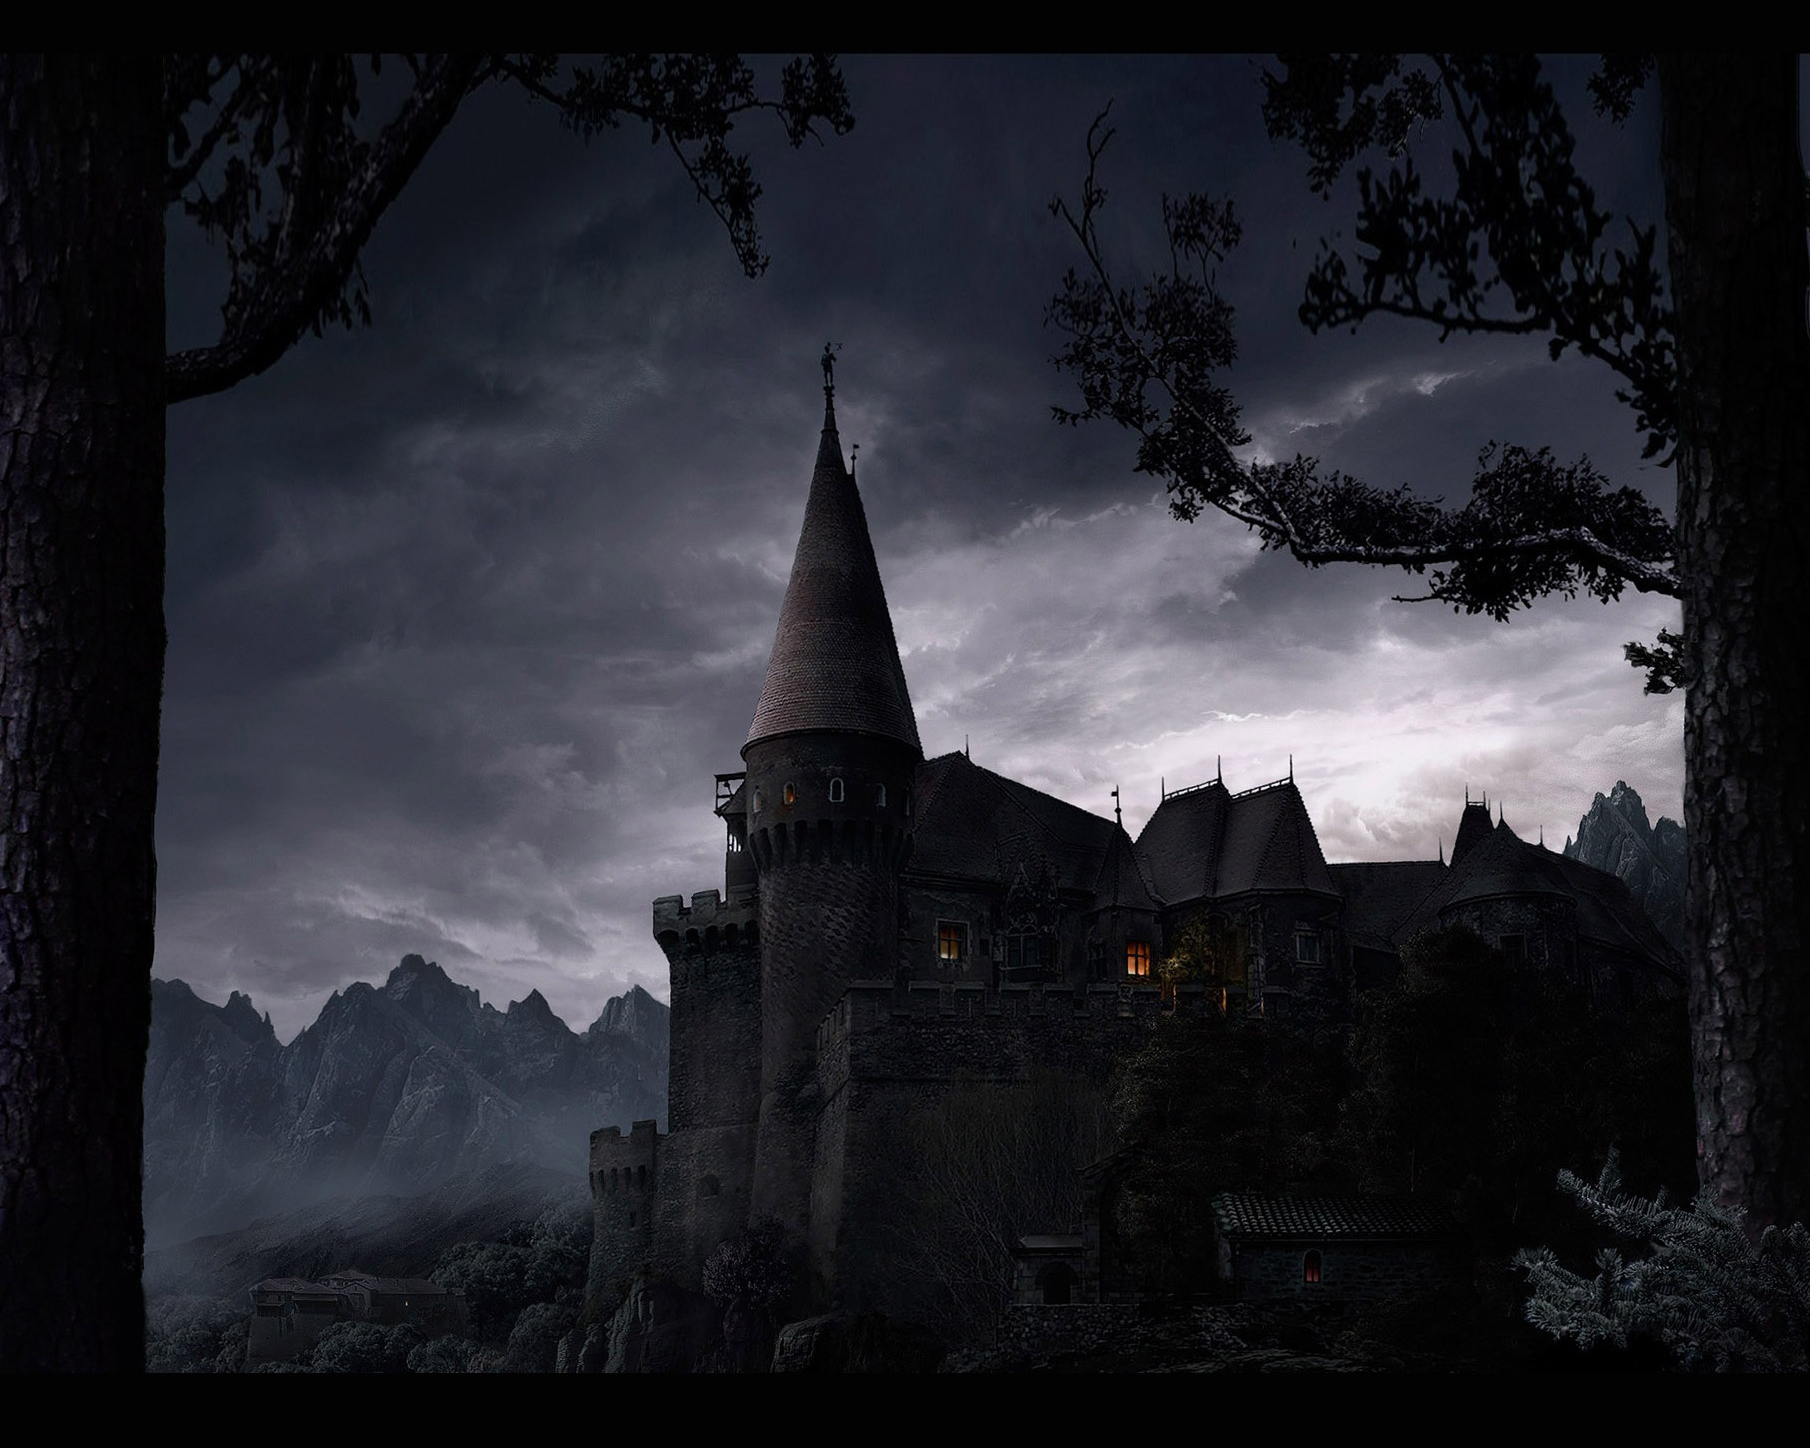 125630 download wallpaper Fantasy, Lock, Elevation, Rise, Night, Shine, Light, Trees, Walls screensavers and pictures for free